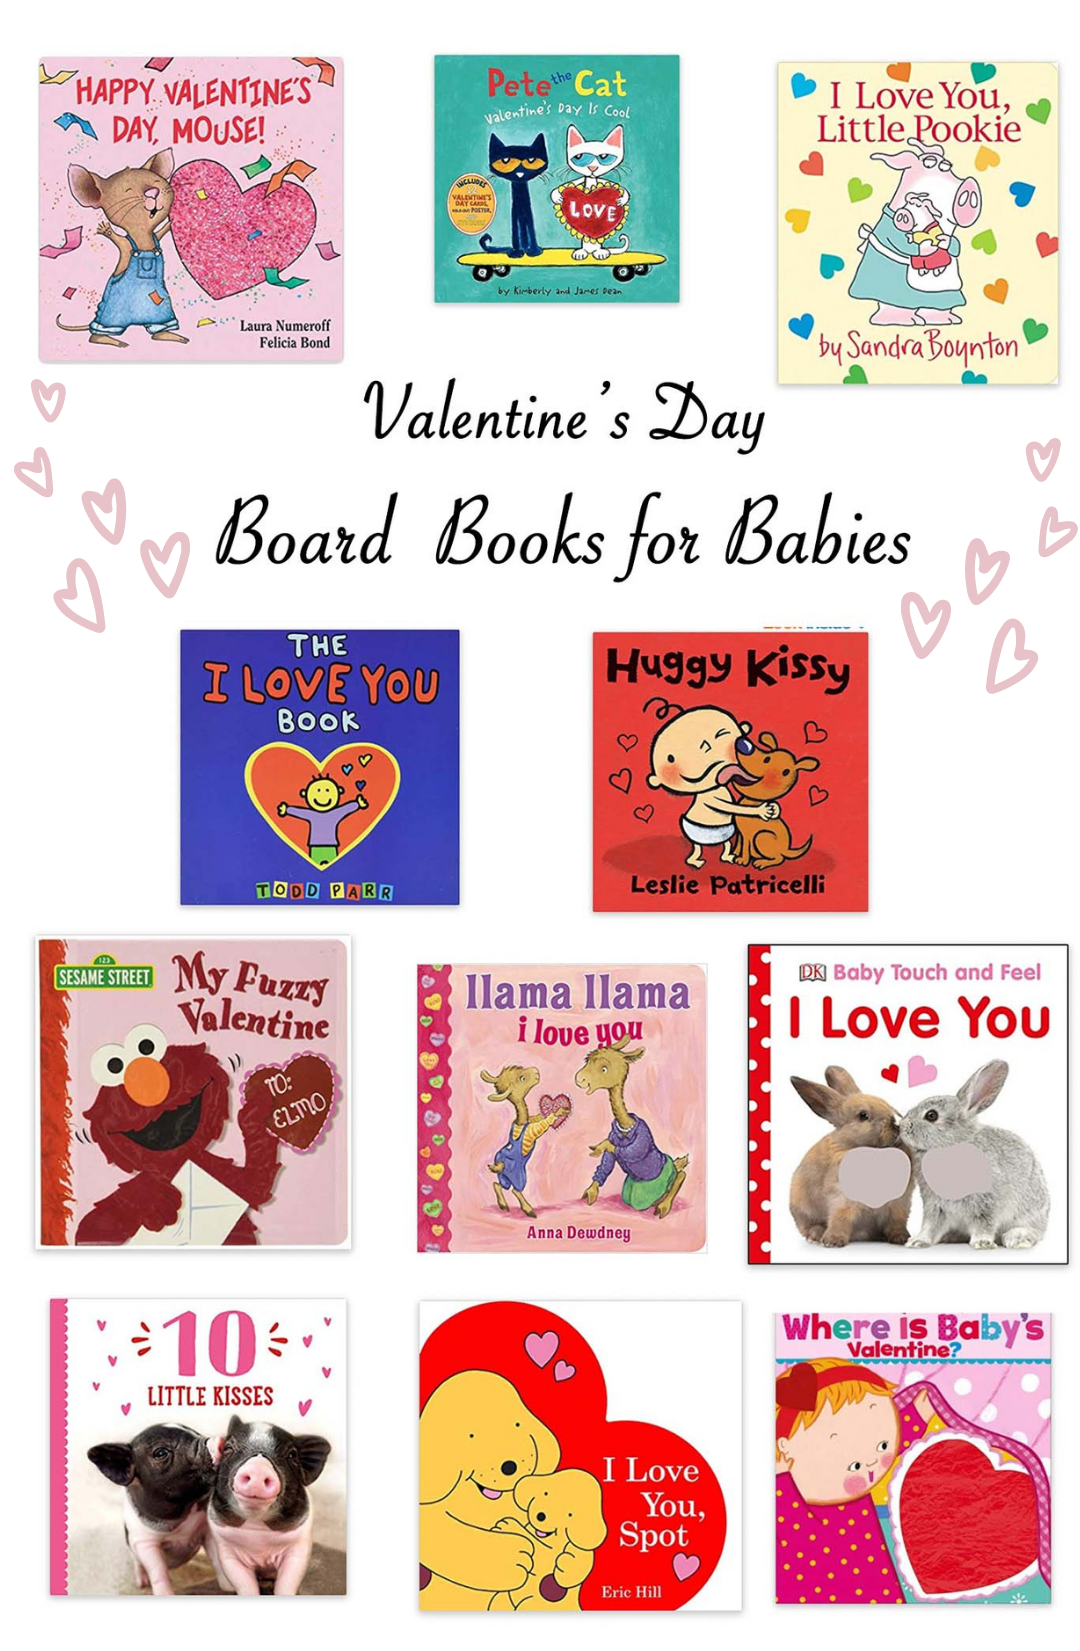 Valentine's Day Books for Kids by popular Chicago motherhood blog, Glass of Glam: collage image of the children's books Happy Valentine's Day Mouse!, Pete the Cat, I Love you Little Pookie, The I Love You Book, Huggy Kissy, My Fuzzy Valentine, Llama Llama I Love You, Baby Touch and Feel I Love You, 10 Little Kisses, I Love You Spot, and Where is Baby's Valentine?